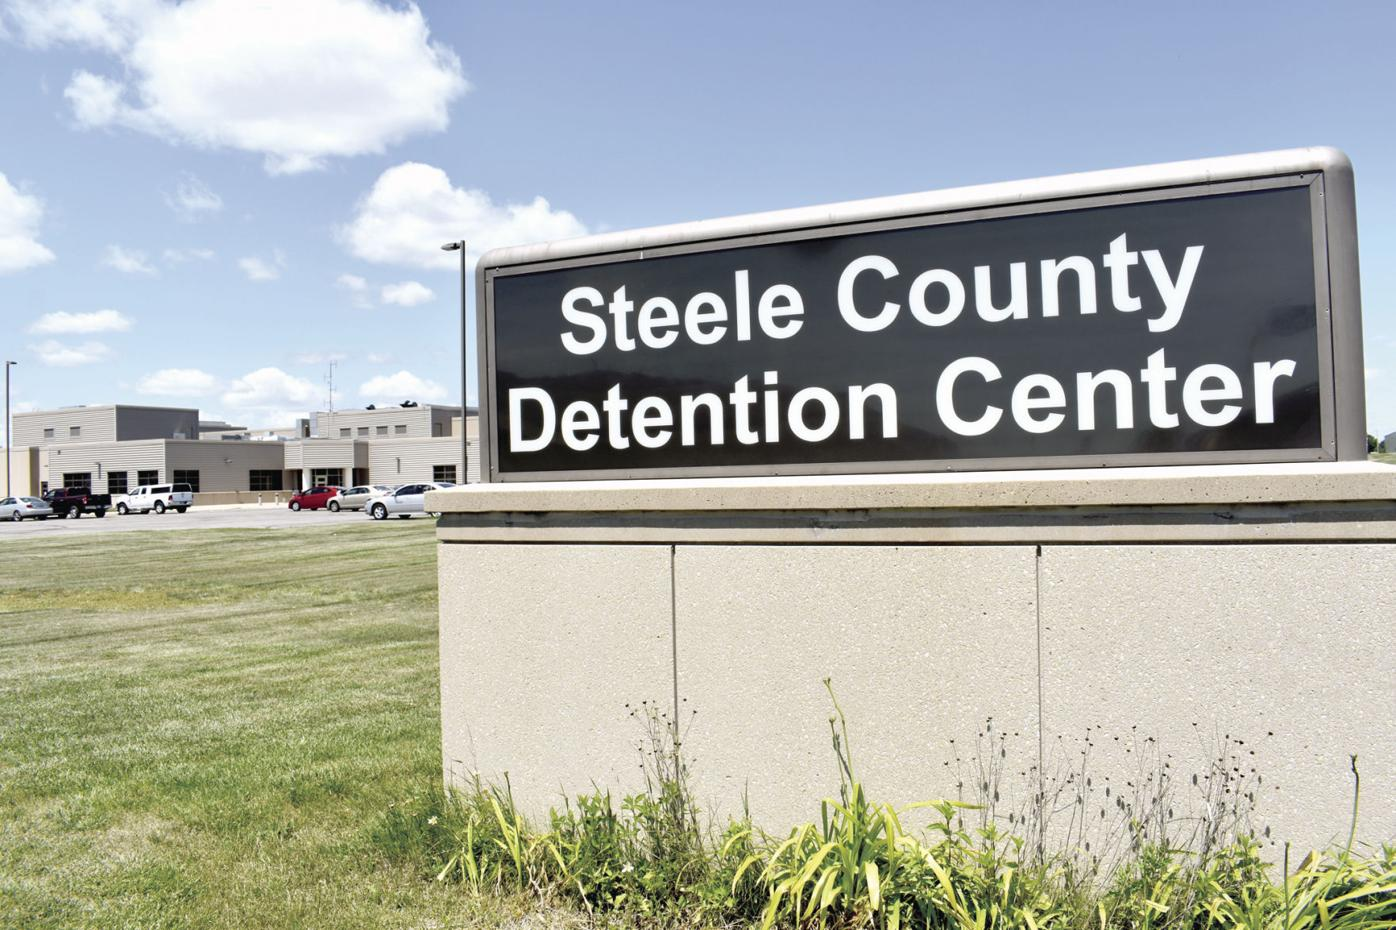 Steele County Detention Center COVID-19